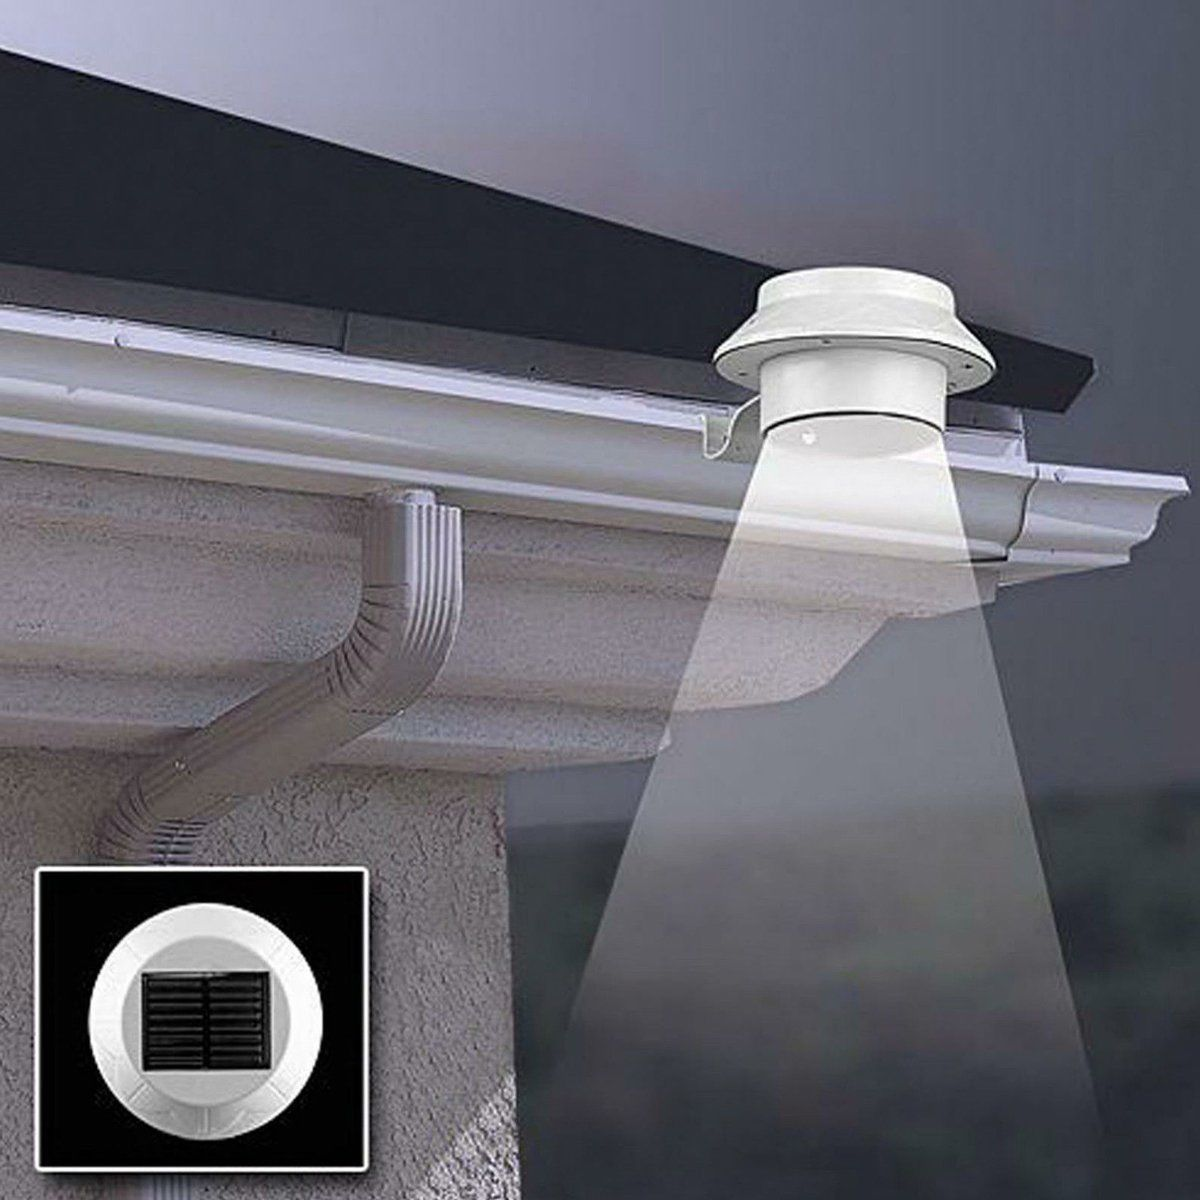 4 98 Outdoor 3 Led Solar Ed Wall Mount Fence Garden Gutter Roof Yard Light Lamp Ebay Home